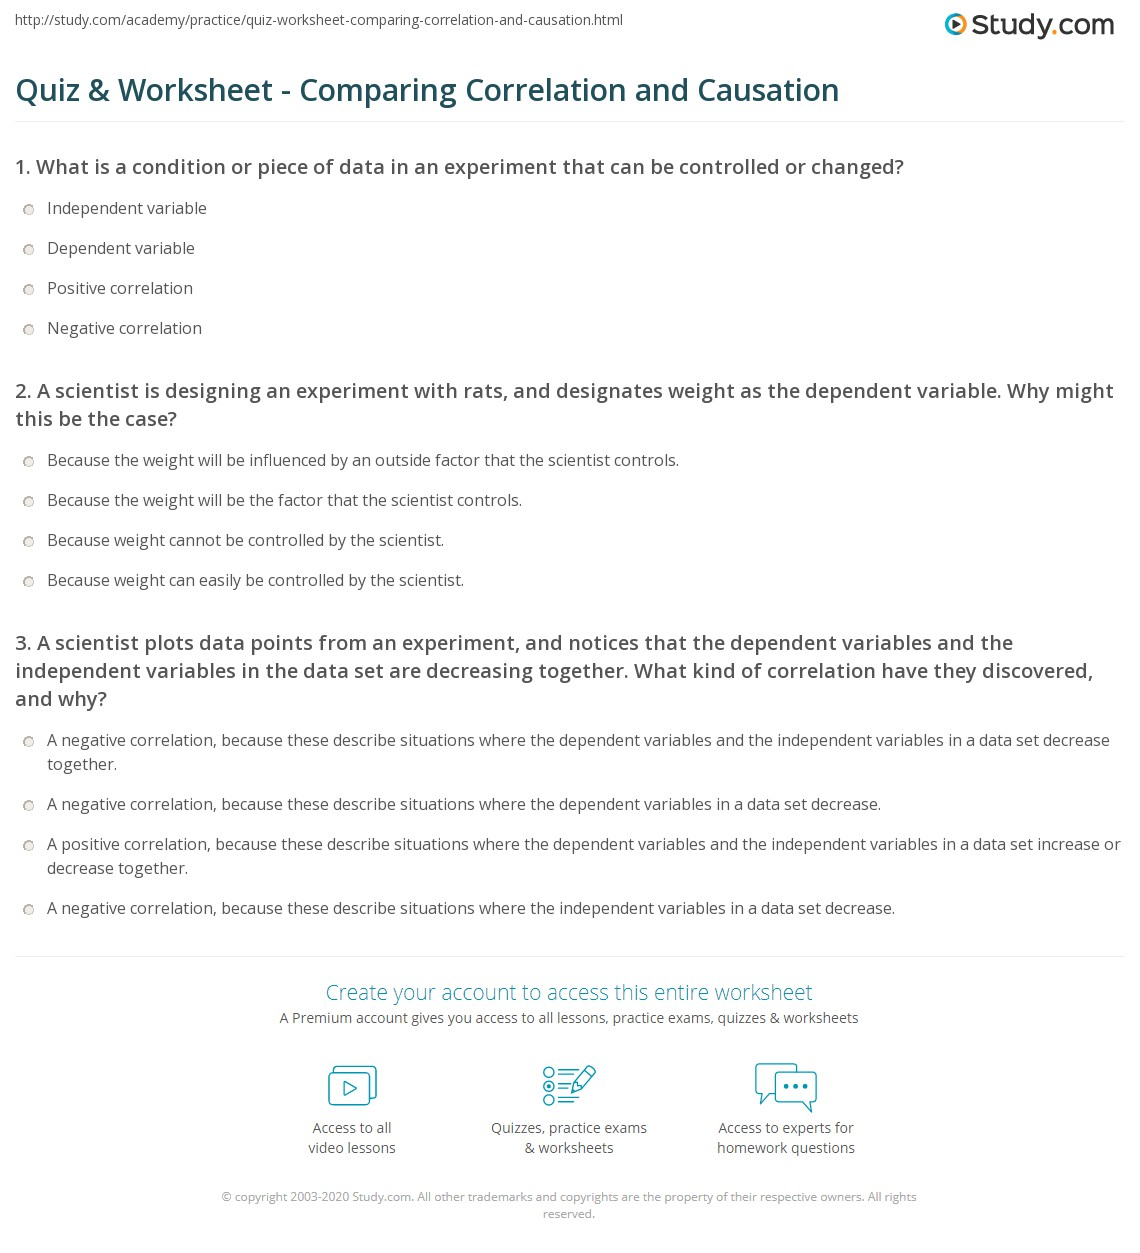 Aldiablosus  Ravishing Quiz Amp Worksheet  Comparing Correlation And Causation  Studycom With Lovely Print Correlation Vs Causation Differences Amp Definition Worksheet With Cool Indefinite Pronoun Worksheets Also Converting Fahrenheit To Celsius Worksheets In Addition Smart Goal Planning Worksheet And Eic Worksheet  As Well As Traceable Worksheet Maker Additionally Verb Noun Worksheet From Studycom With Aldiablosus  Lovely Quiz Amp Worksheet  Comparing Correlation And Causation  Studycom With Cool Print Correlation Vs Causation Differences Amp Definition Worksheet And Ravishing Indefinite Pronoun Worksheets Also Converting Fahrenheit To Celsius Worksheets In Addition Smart Goal Planning Worksheet From Studycom